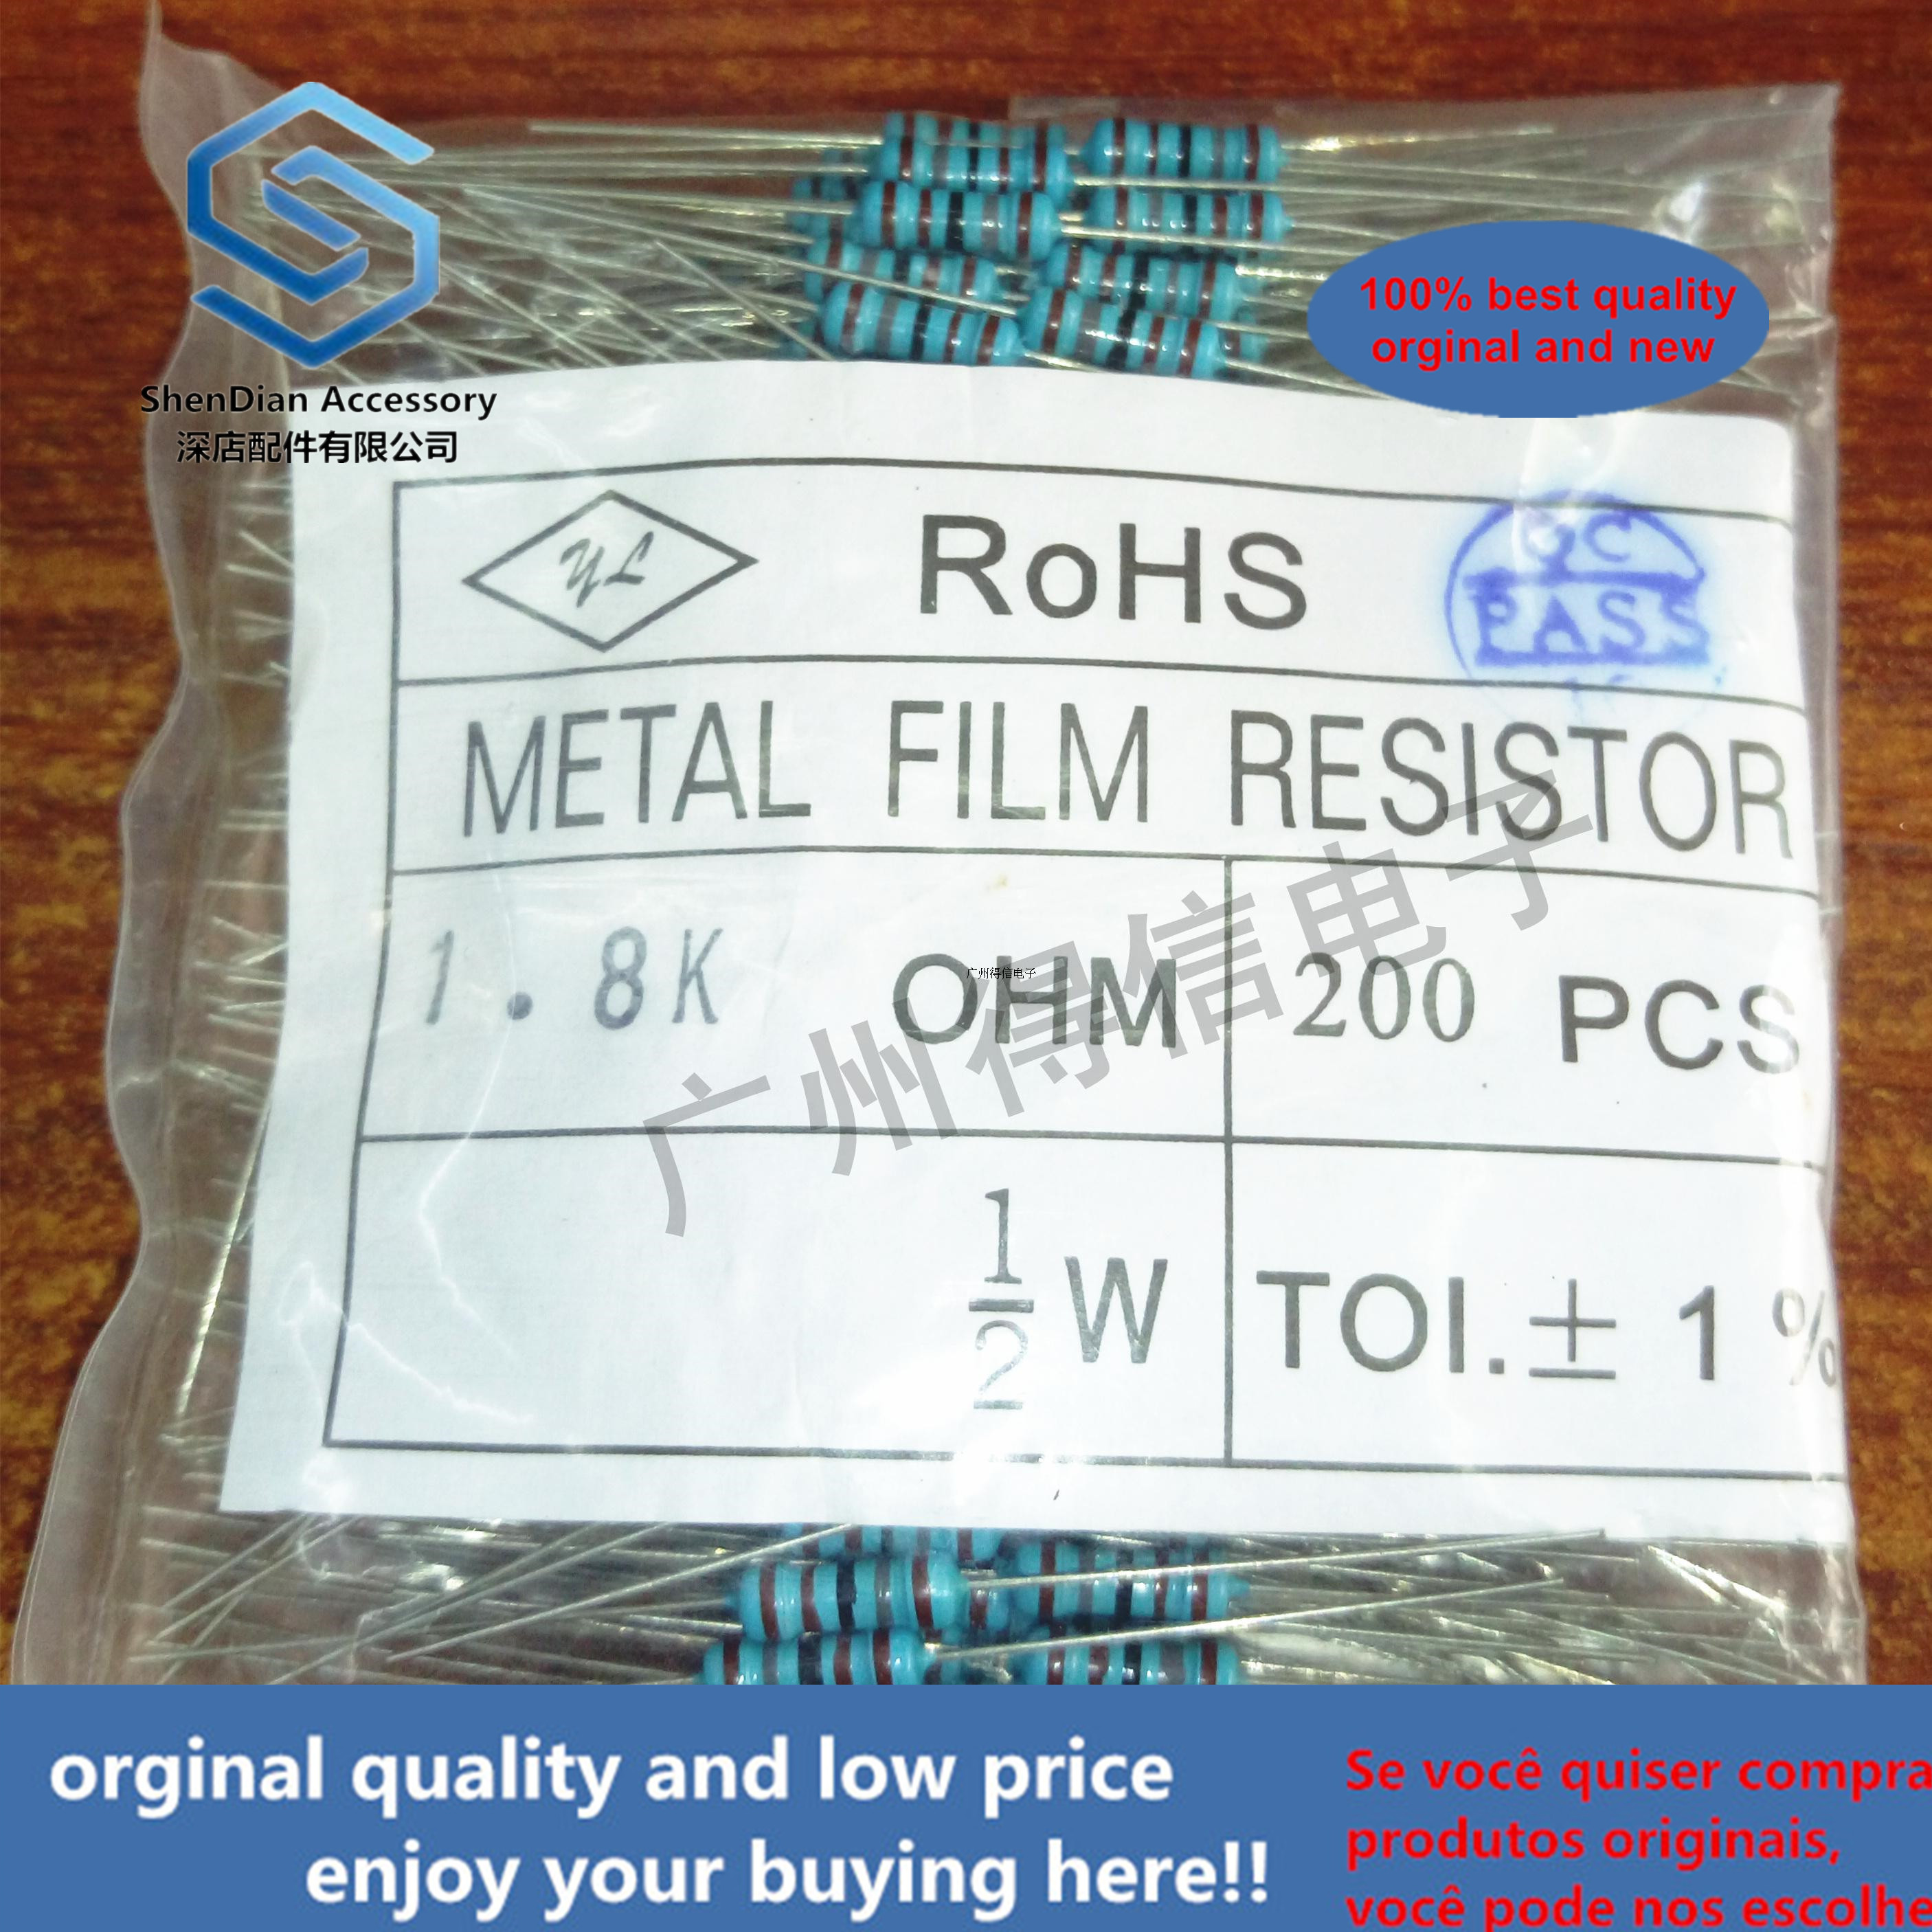 200pcs 1 / 2W 24K 24000 Euro 1% Brand New Metal Film Iron Feet Resistance Bag 200 Pcs Per Pack